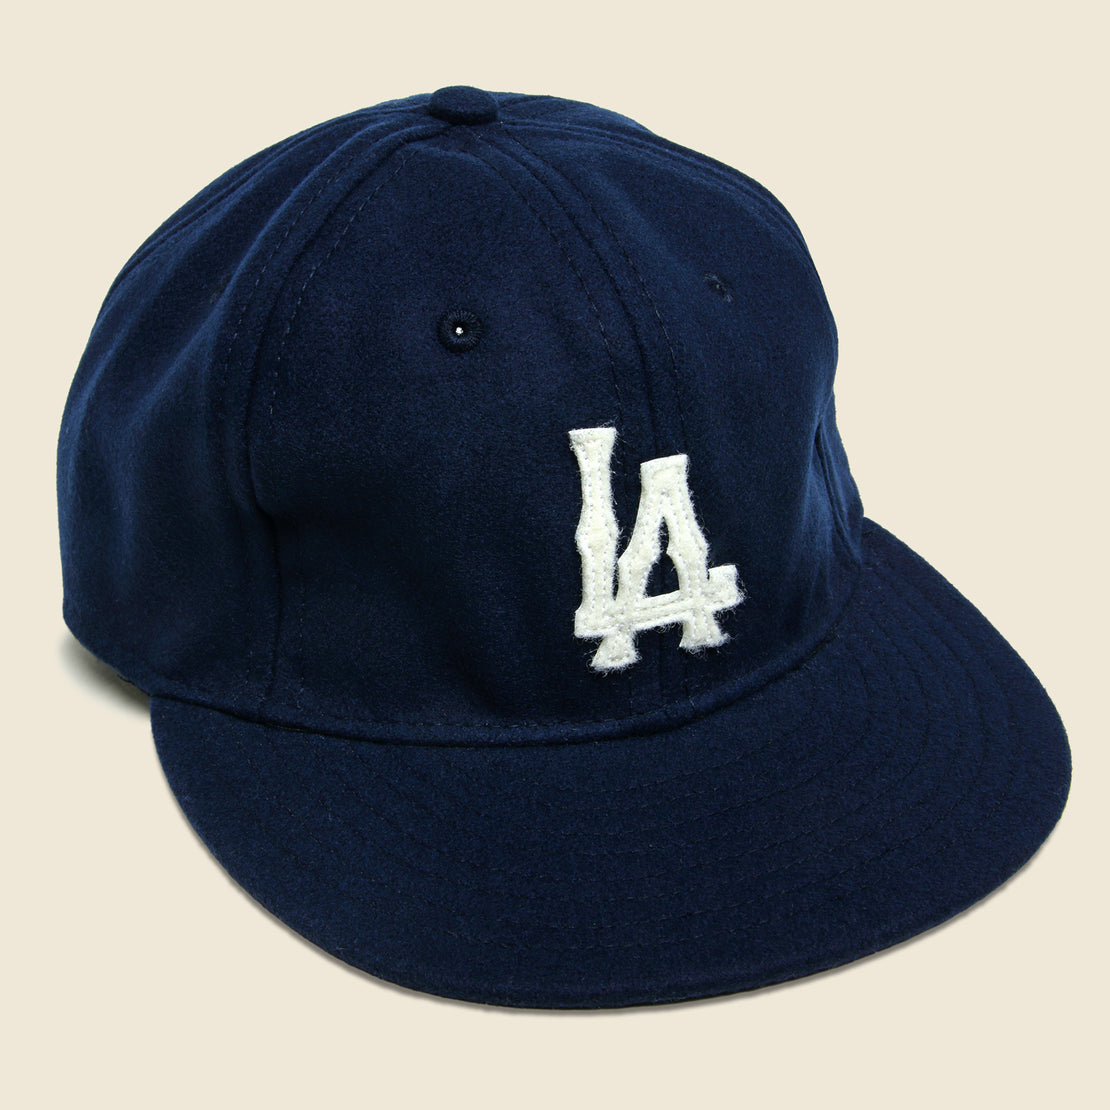 Ebbets Field Flannels Los Angeles Angels Hat - Navy